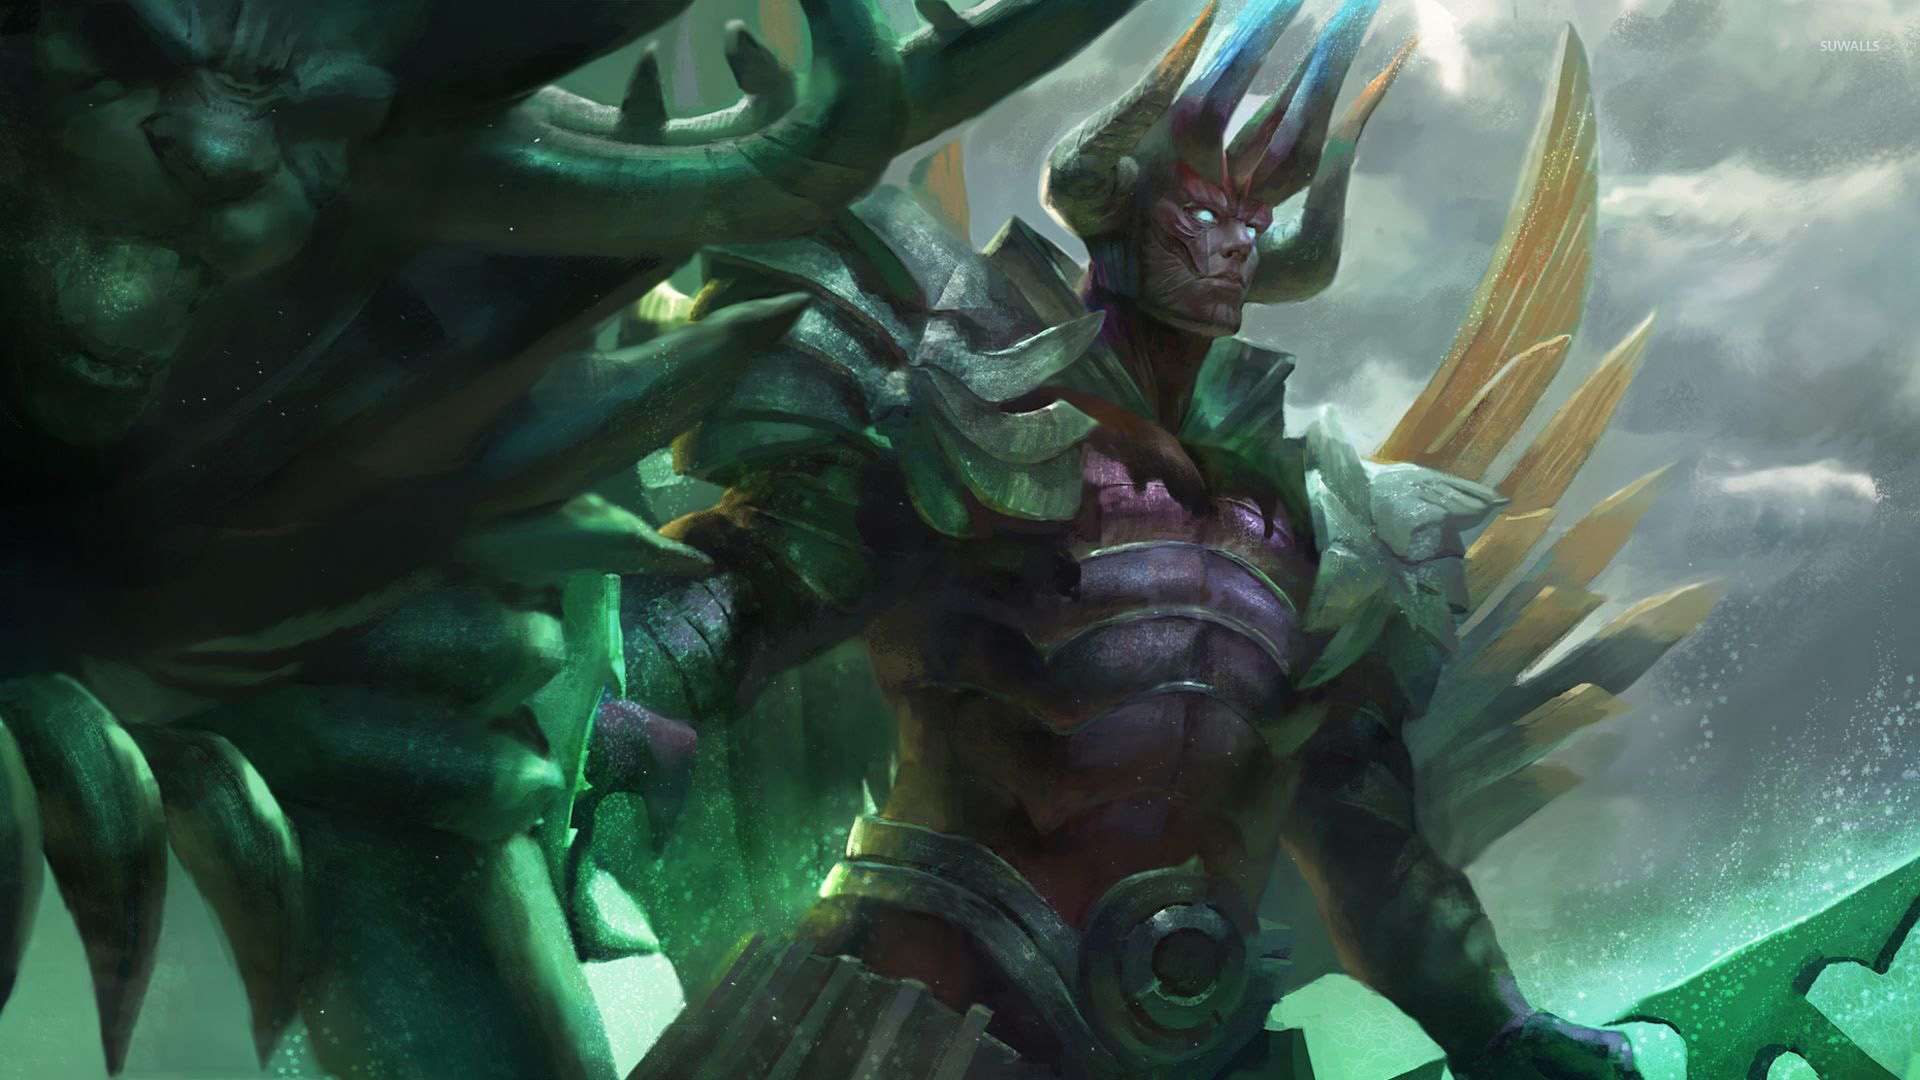 terrorblade in dota 2 wallpaper - game wallpapers - #54370